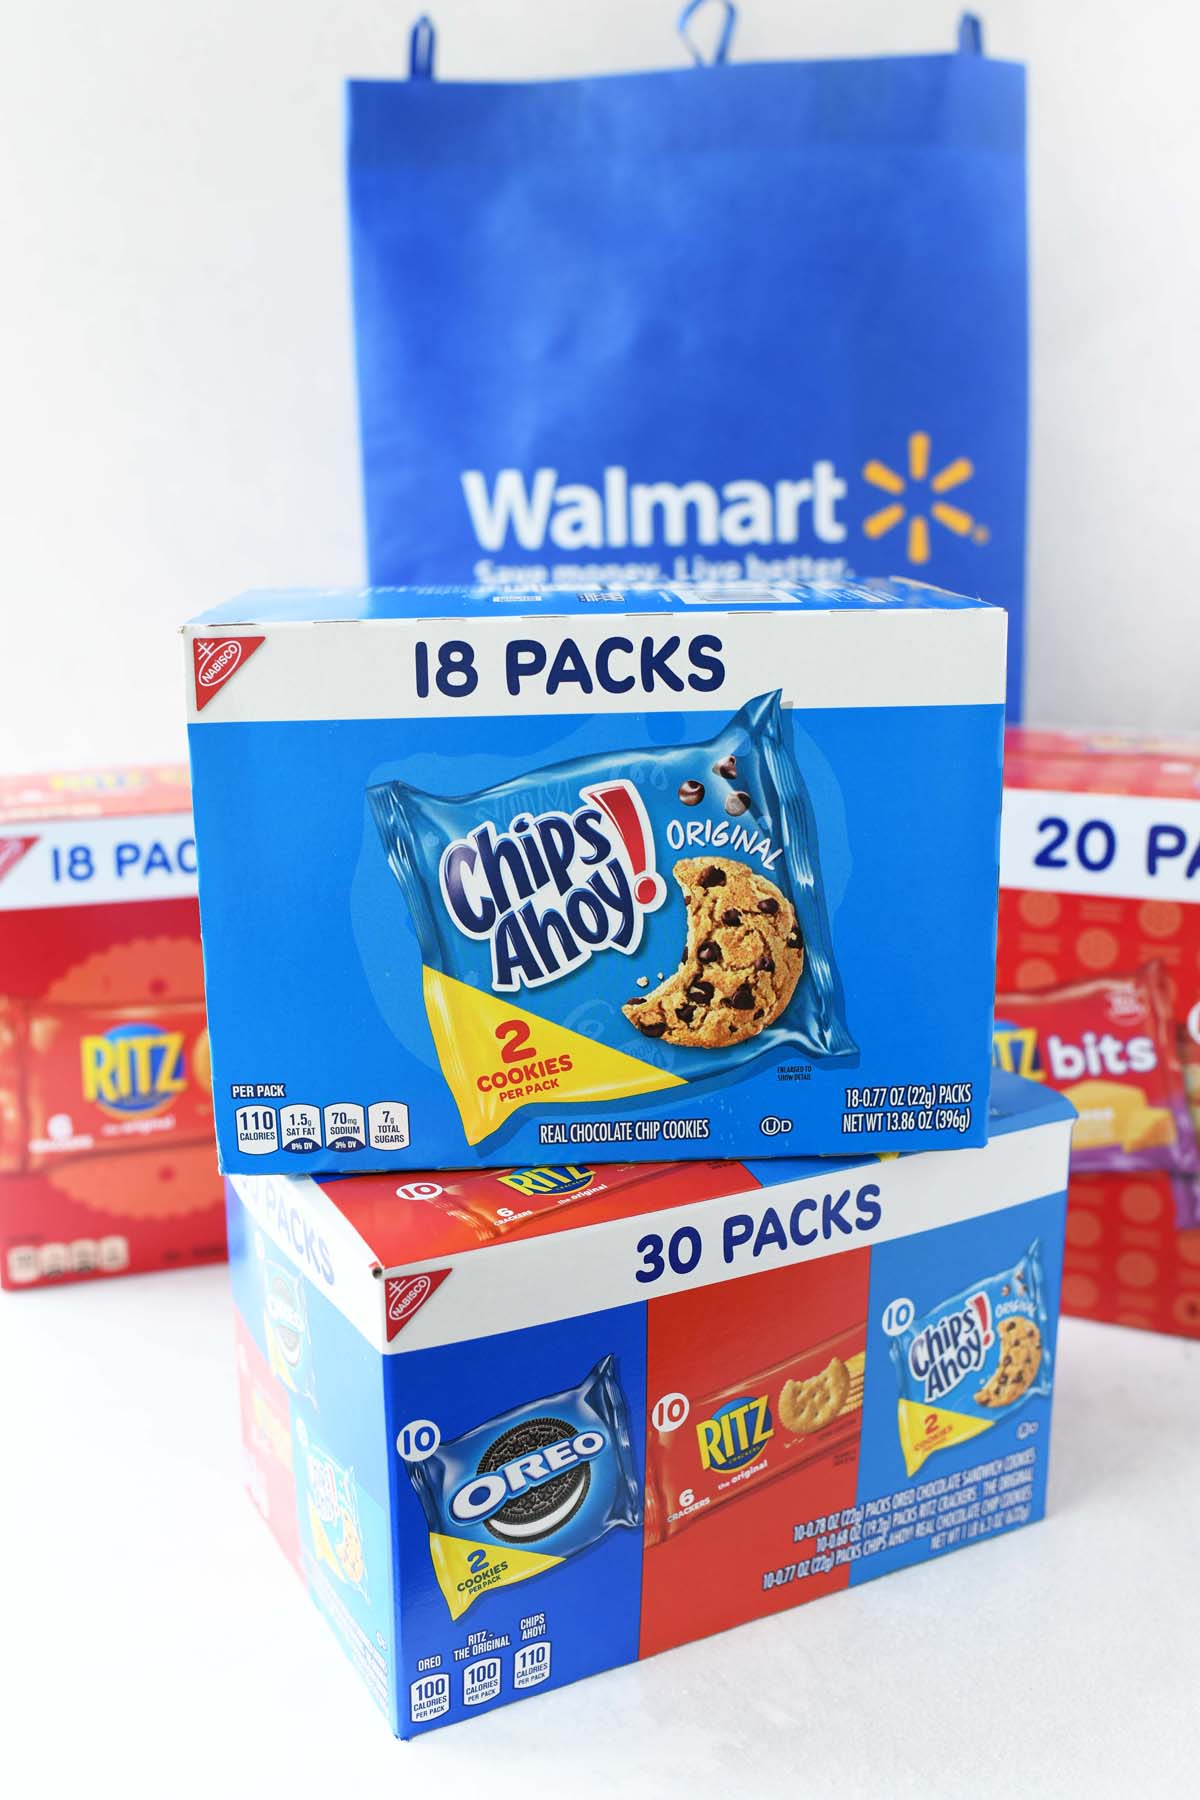 Chips Ahoy Multipack boxes with a blue Walmart bag.